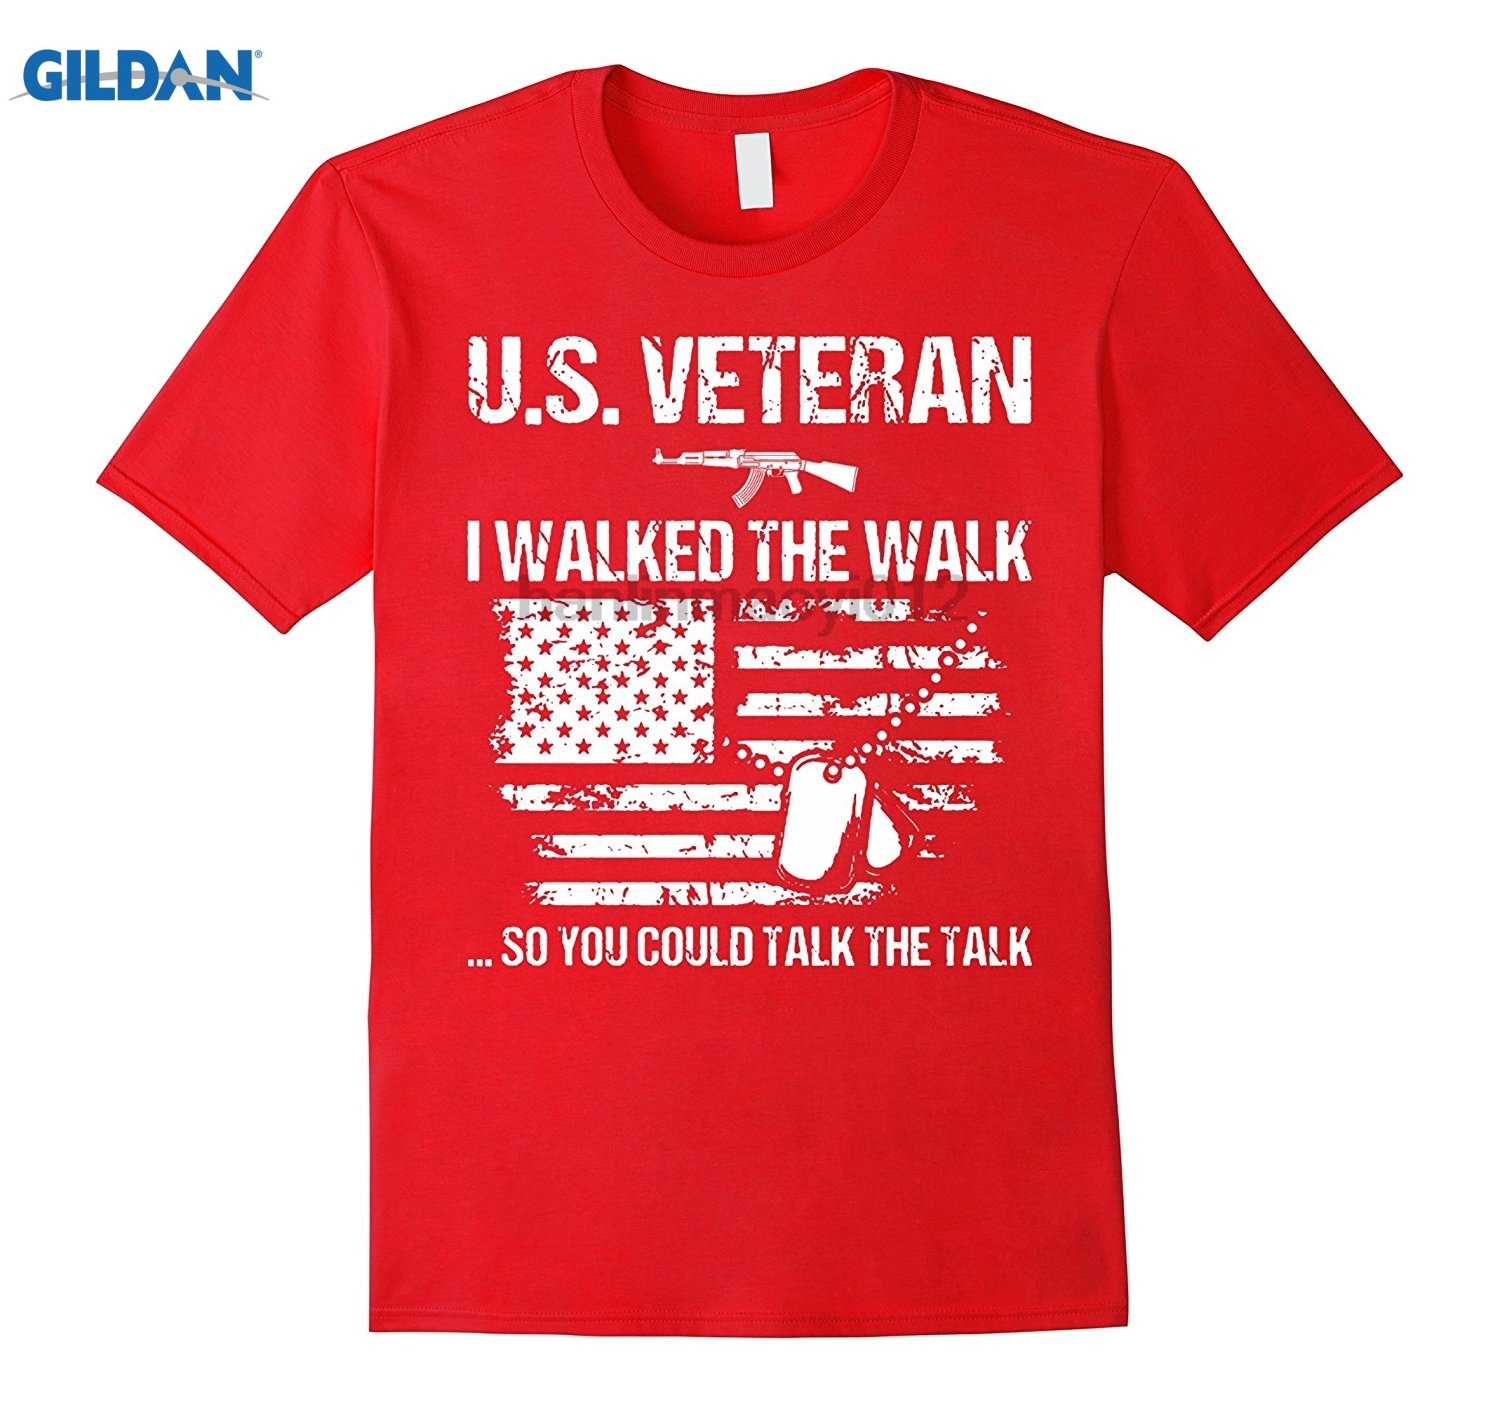 GILDAN U.S VETERAN I WALKED THE WALK SO YOU COULD TALK T-SHIRT Mothers Day Ms. T-shirt